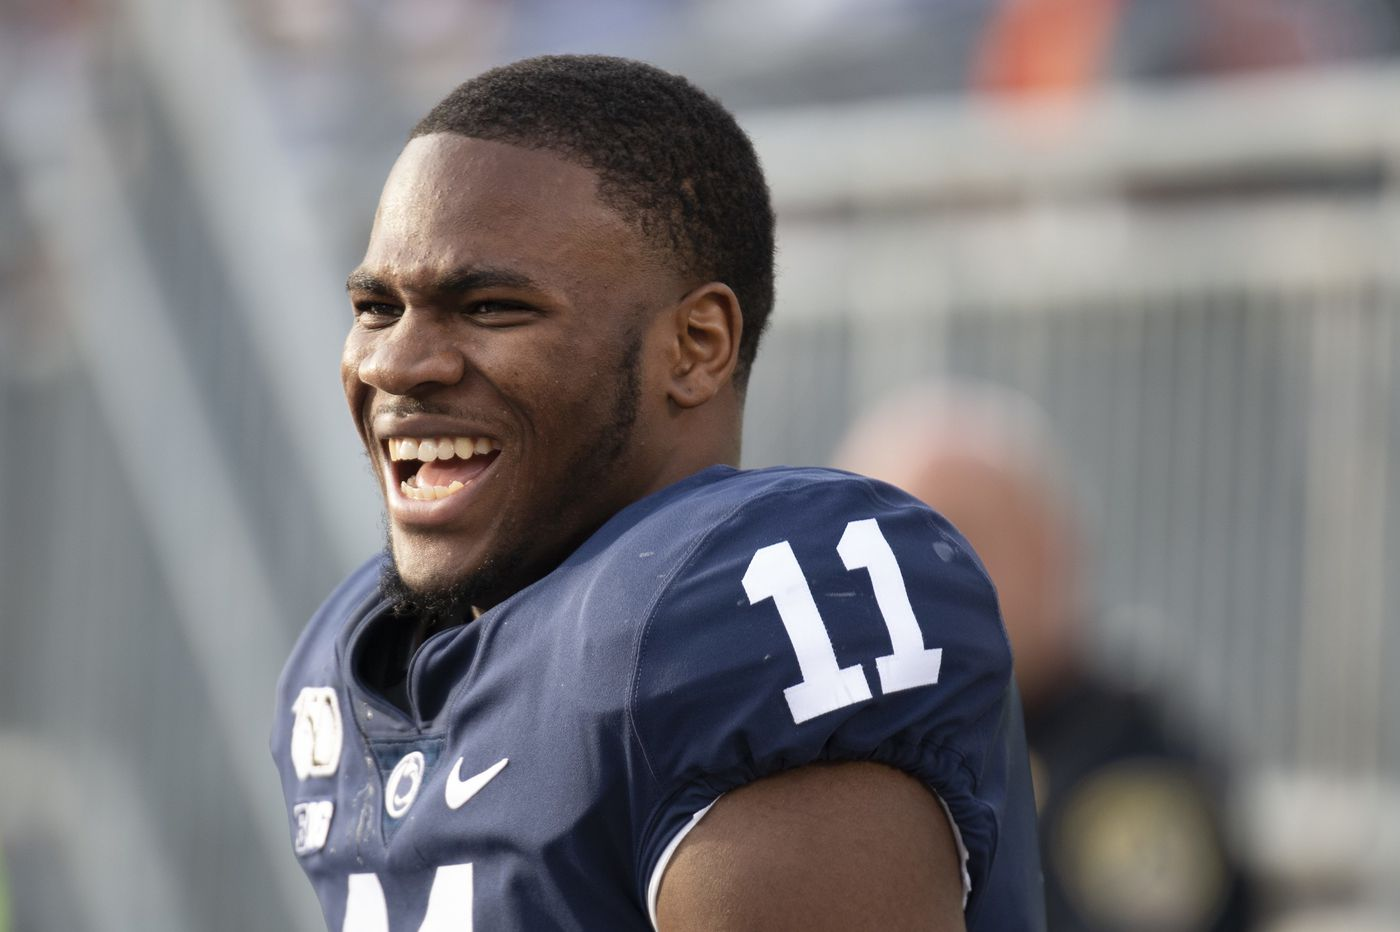 Micah Parsons won't return to Nittany Lions; athletic department says COVID positive rate improves | Penn State notes